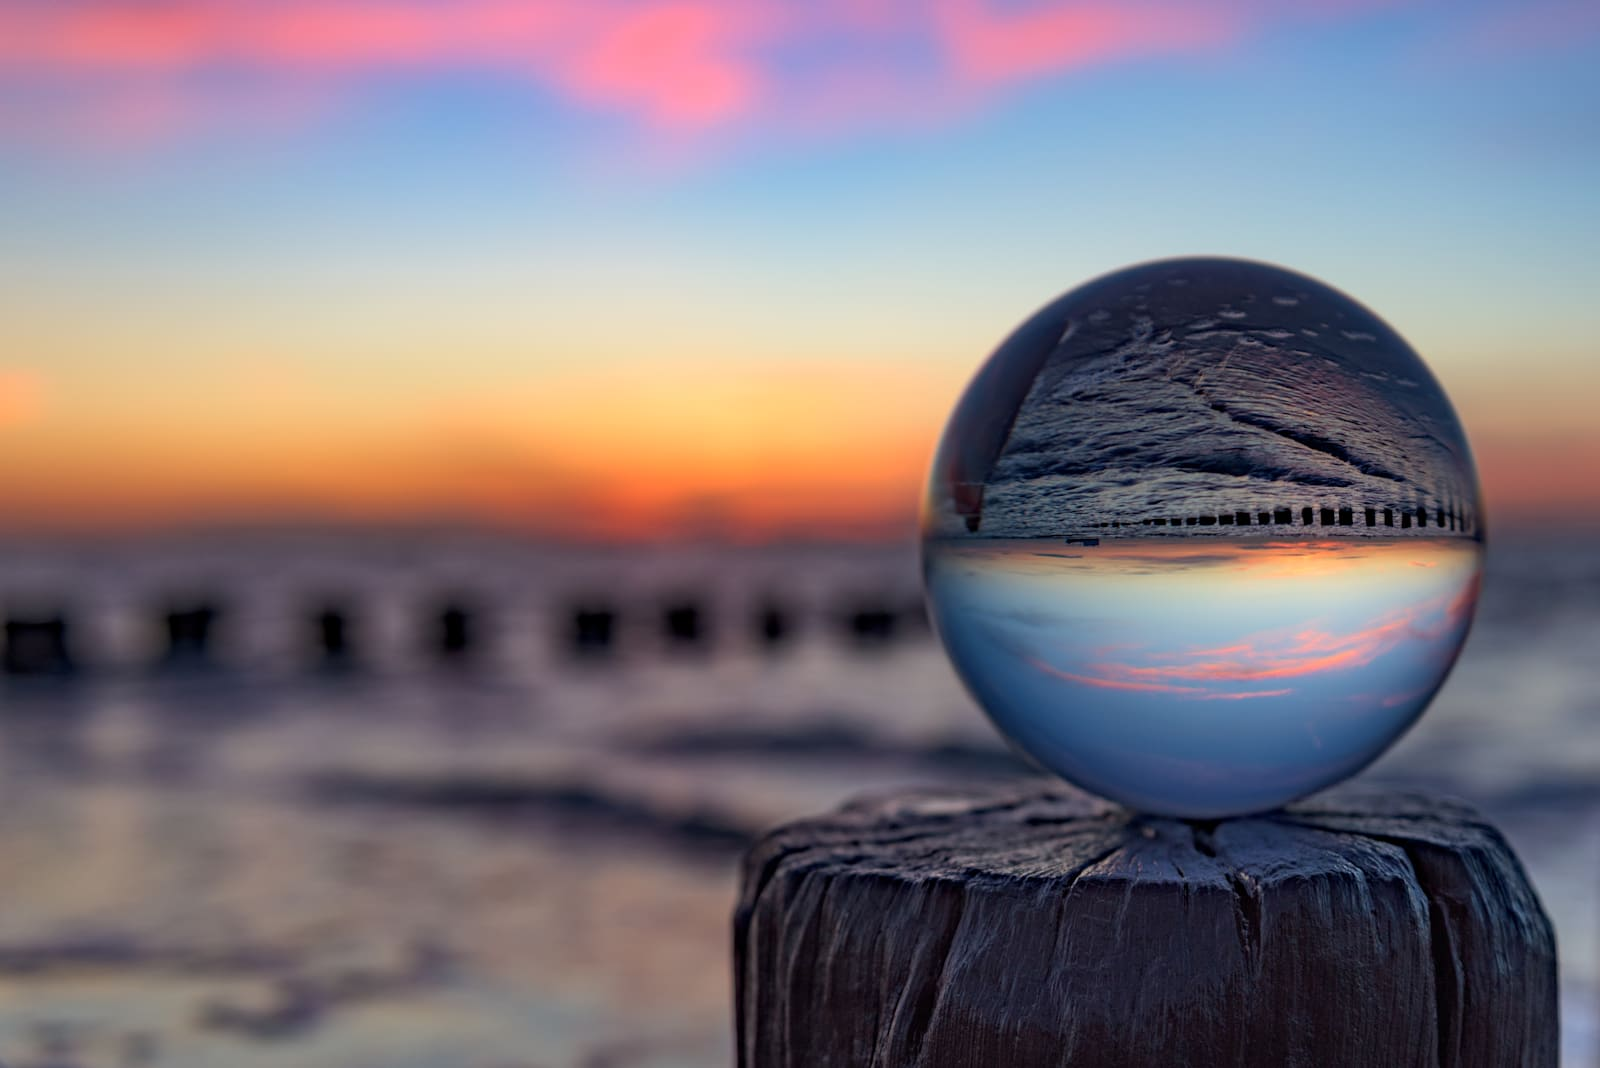 Sunset with a glass globe at the beach